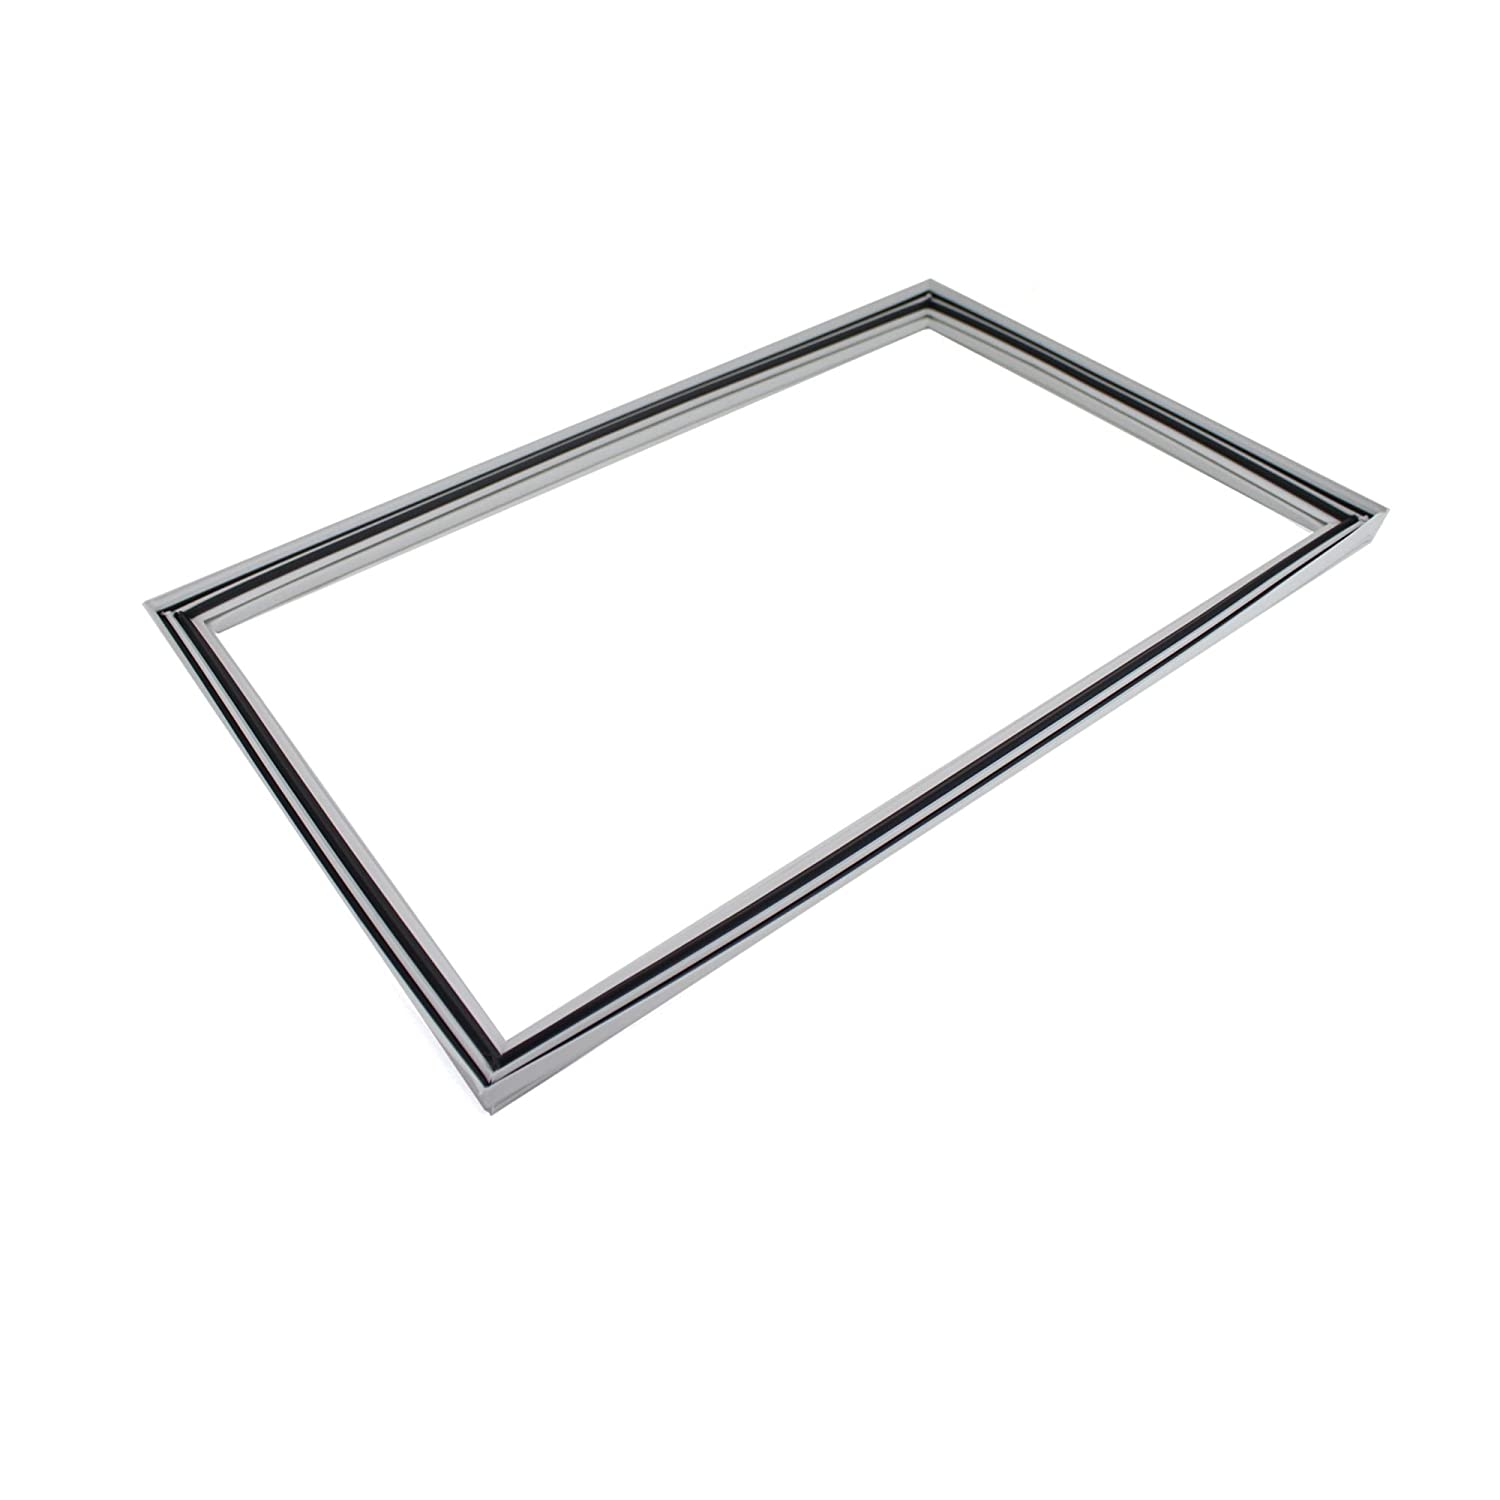 Freezer Door Gasket for General Electric. Hotpoint. WR24X10050. WR24X10228